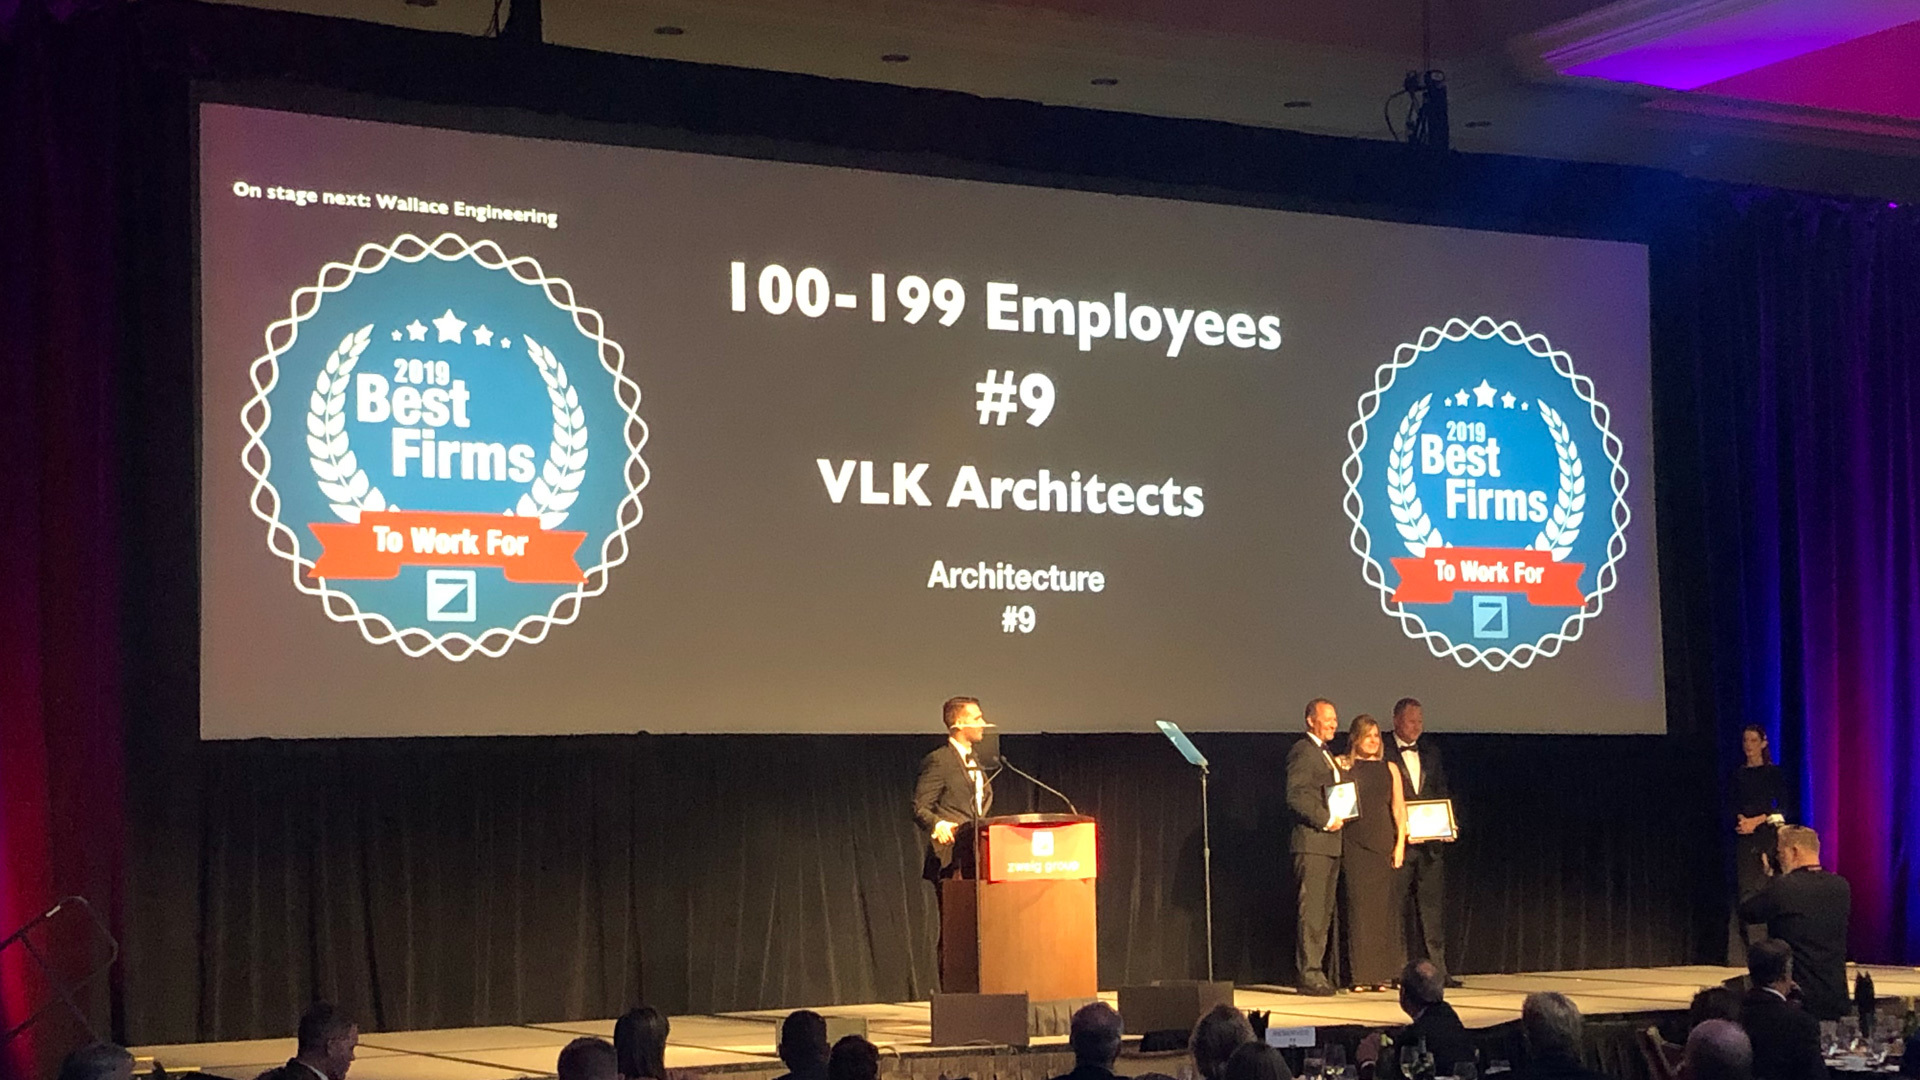 Vlk Architects Recognized For